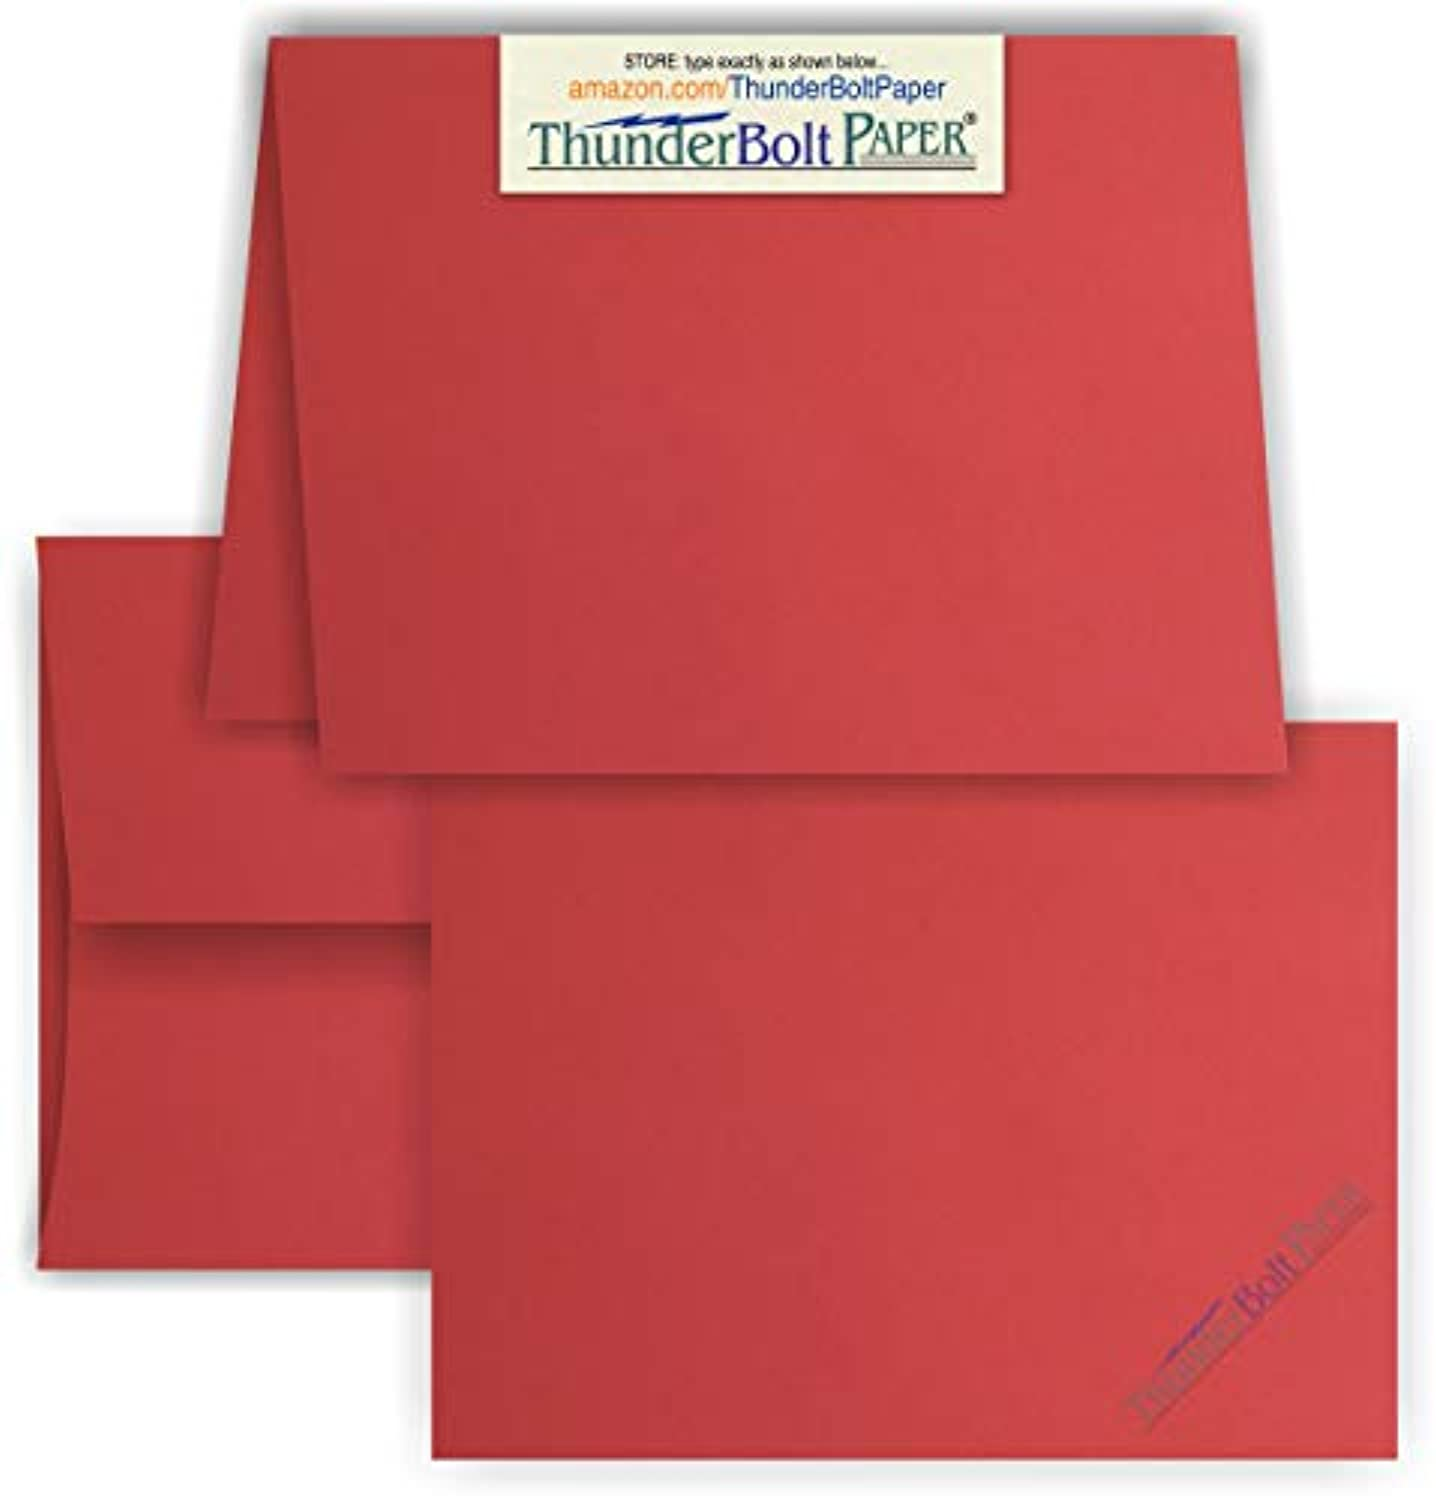 5X7 Folded Size with A-7 Envelopes - Bright Apple Red - 50 Sets (7X10 Cards Scored to Fold in Half) - White Labels - Matching Pack - Invitations, Greeting, Thank Yous, Notes, Holidays, Weddings